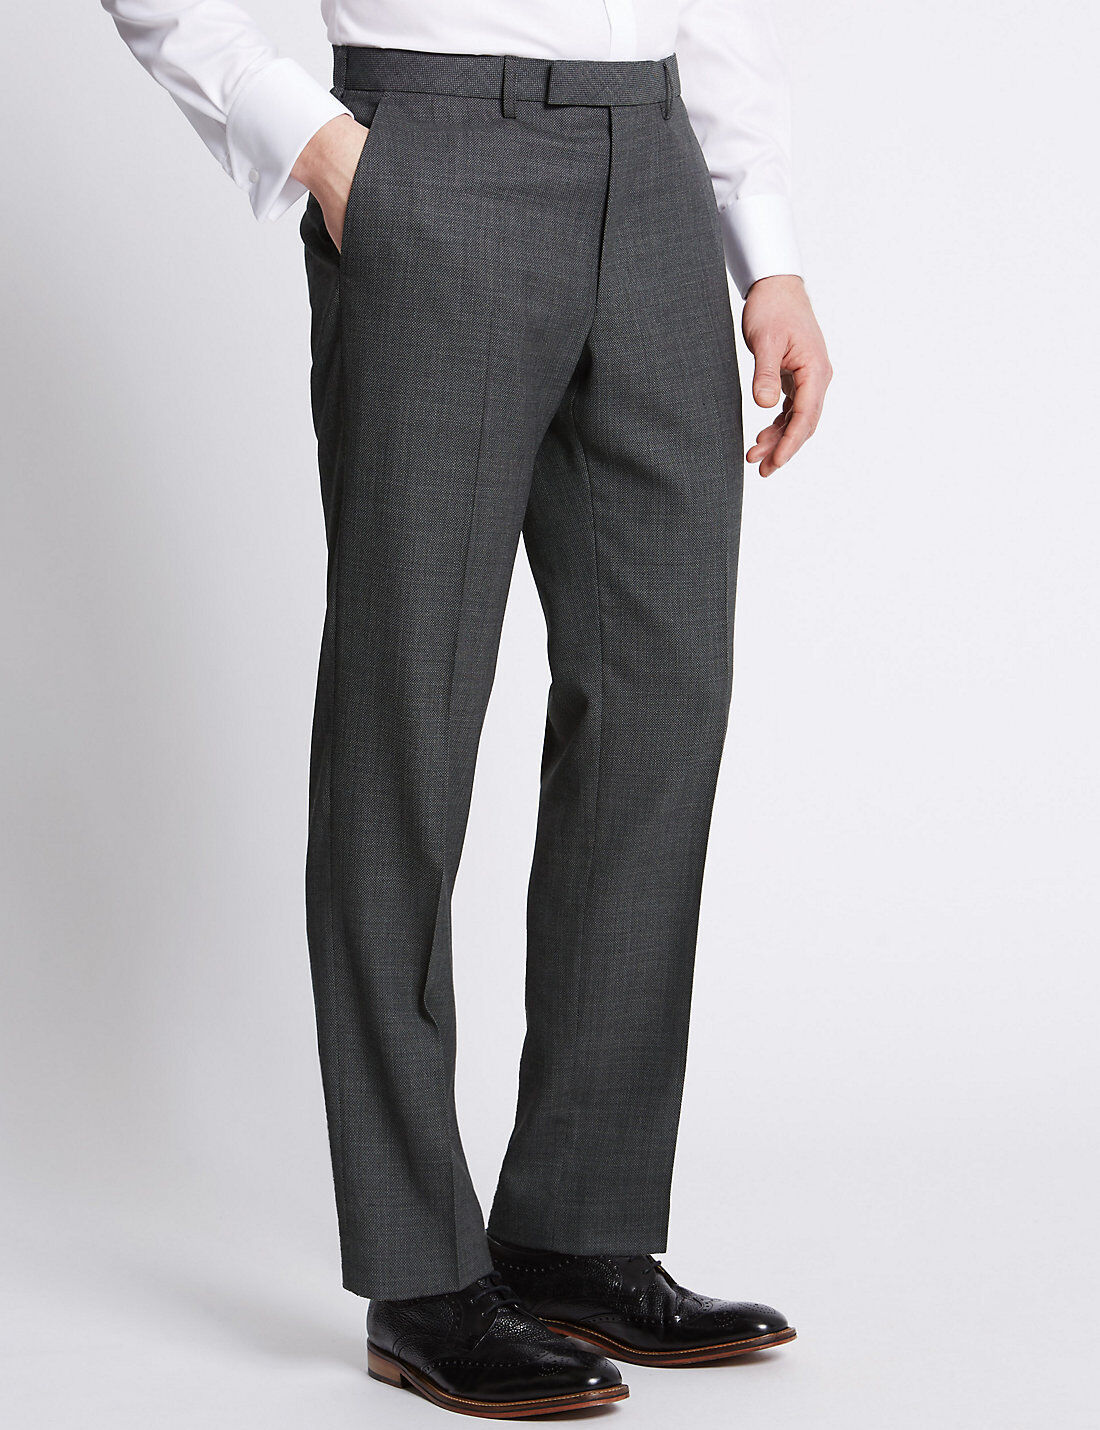 M&S COLLECTION Grey Textured Tailored Fit Trousers   GREY